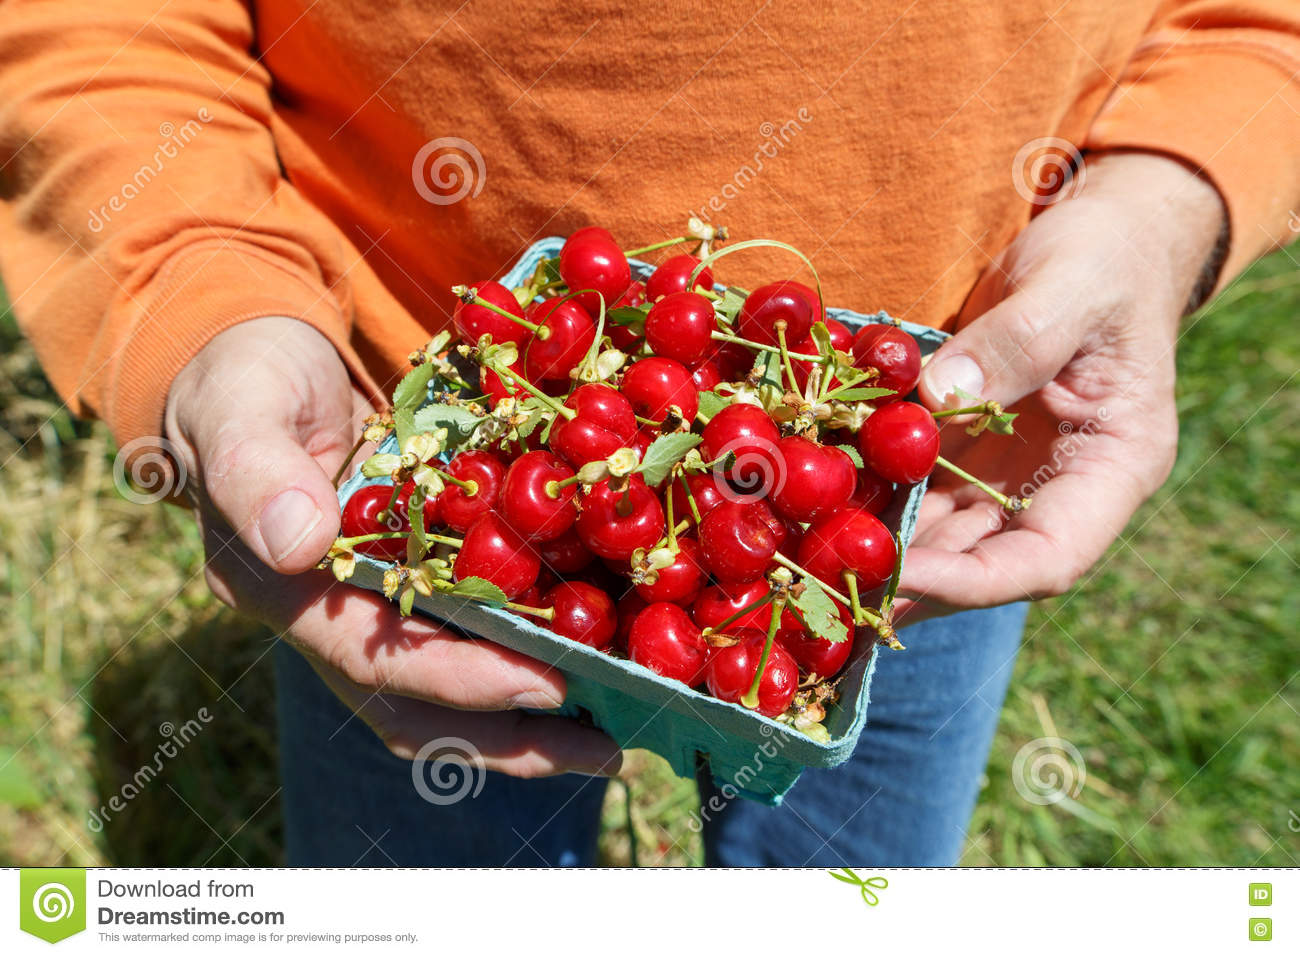 Sour Cherries Nutritional Information